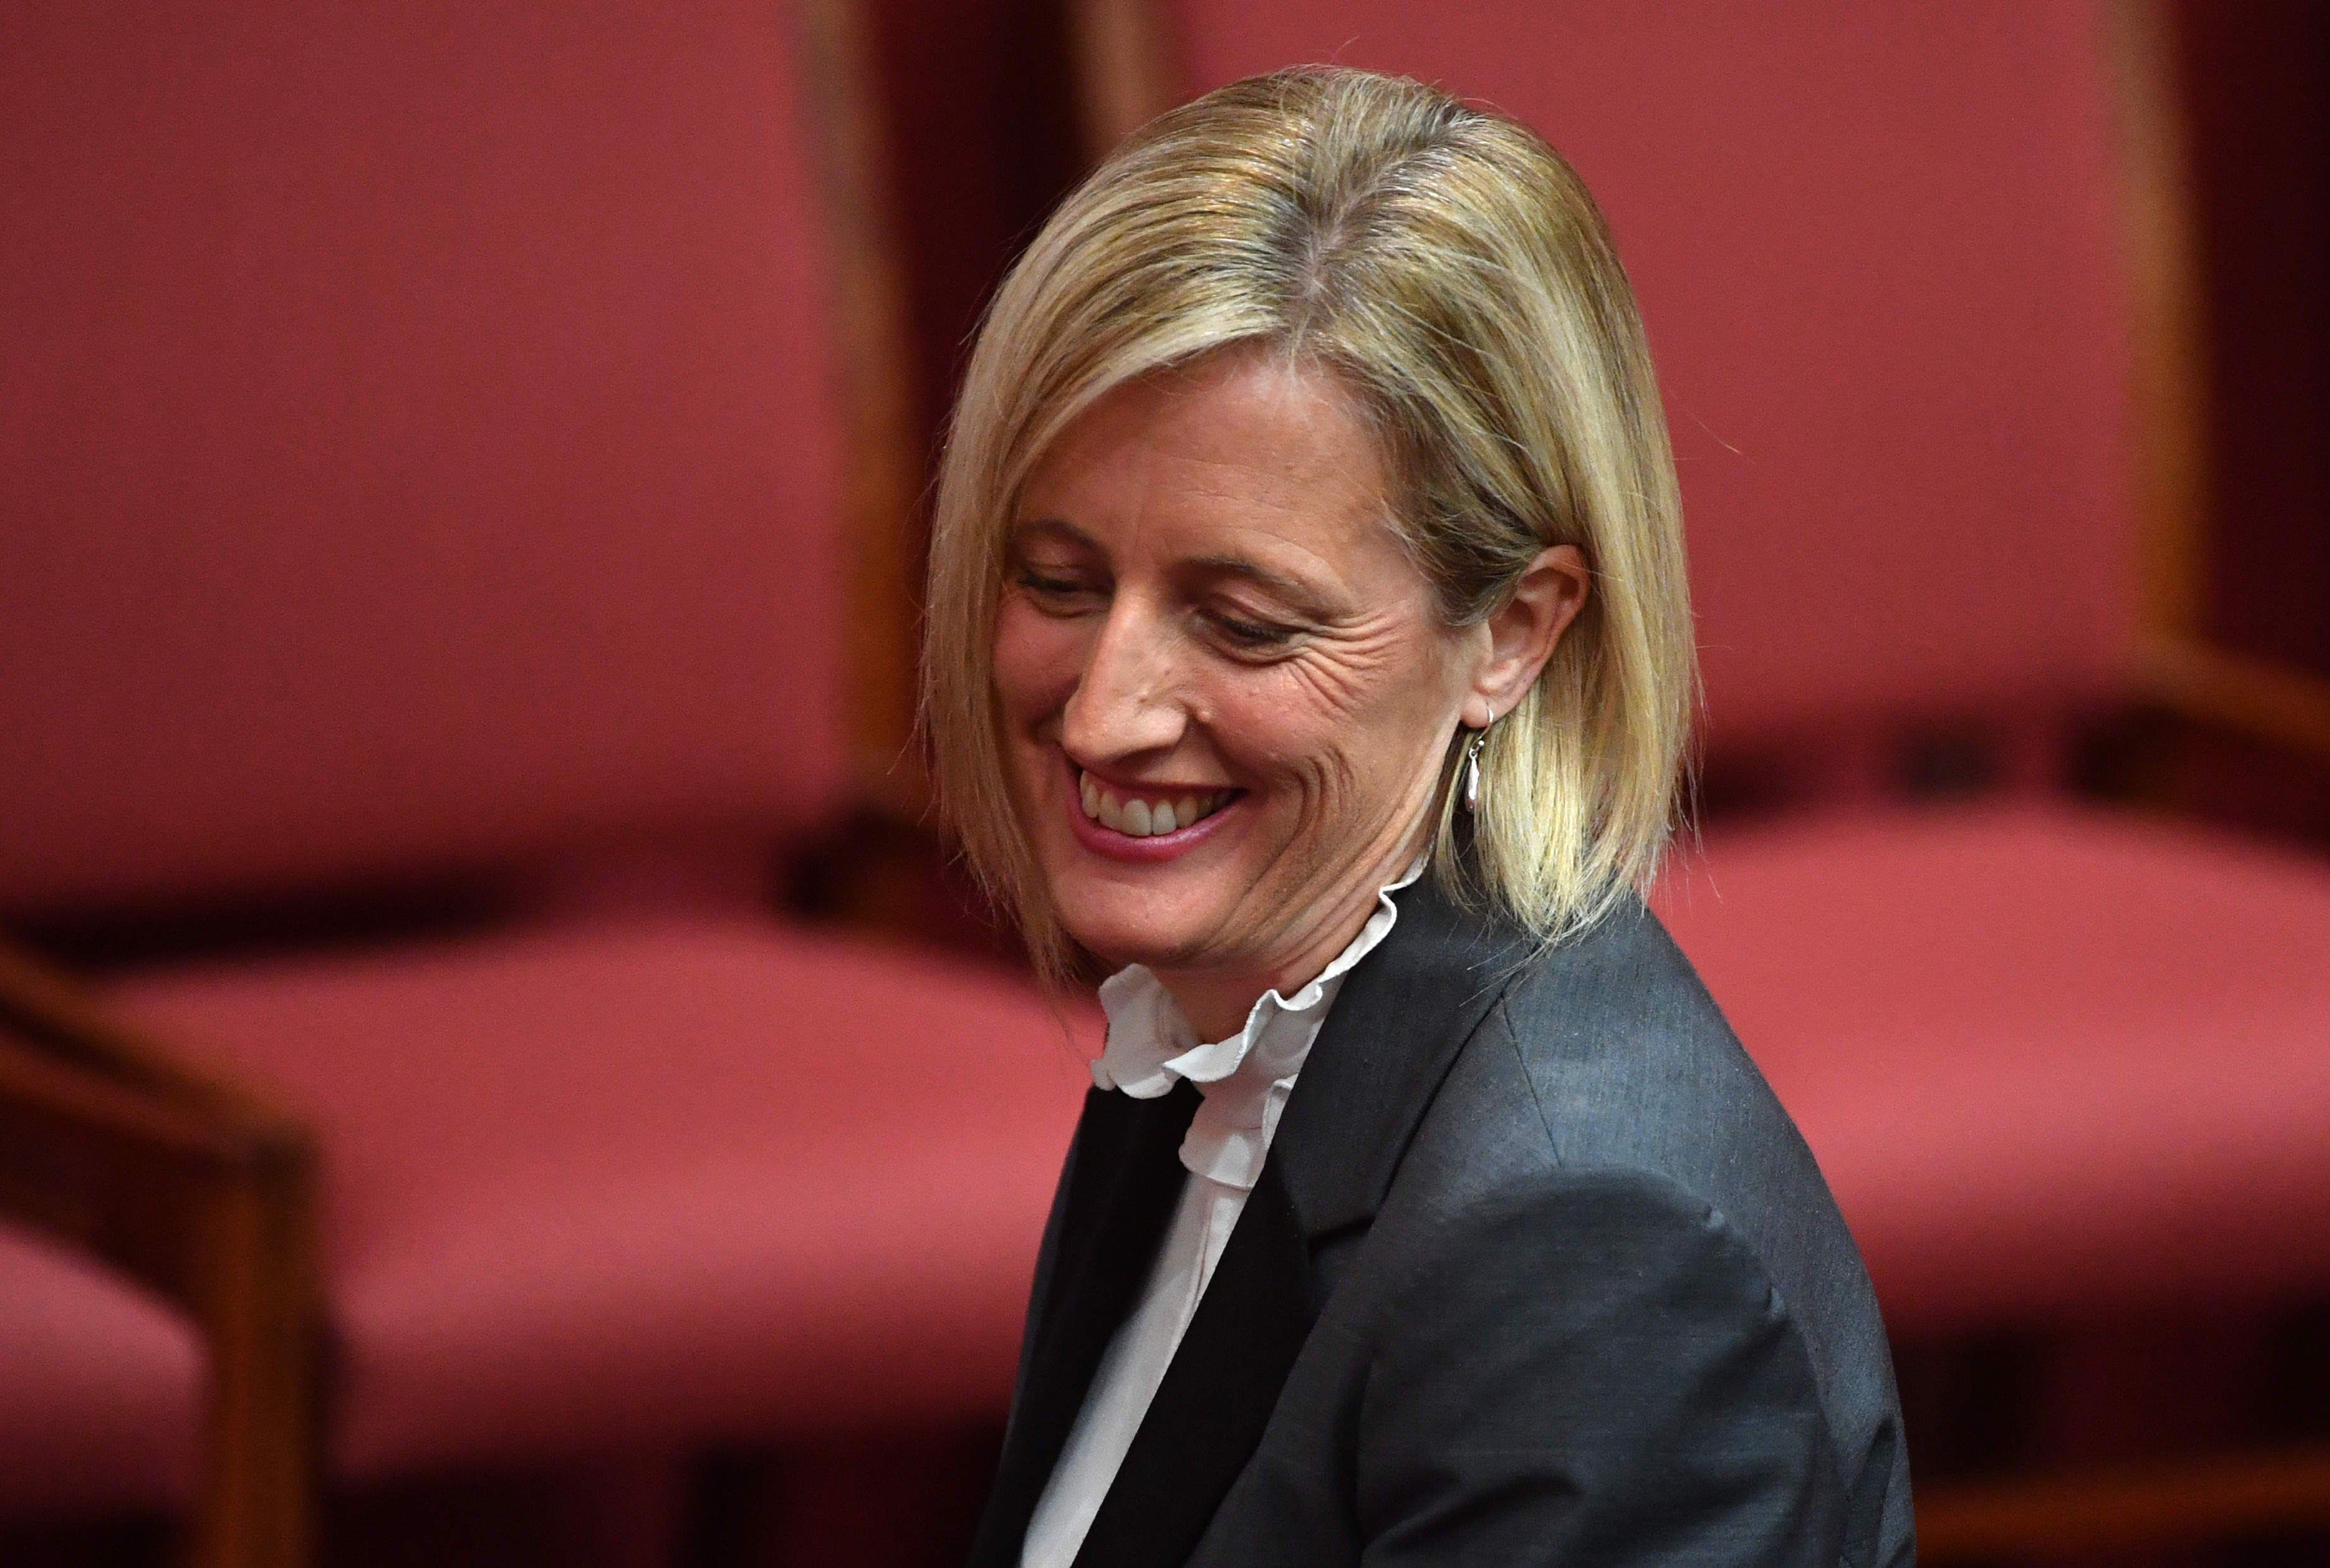 Labor senator referred to High Court and others could follow